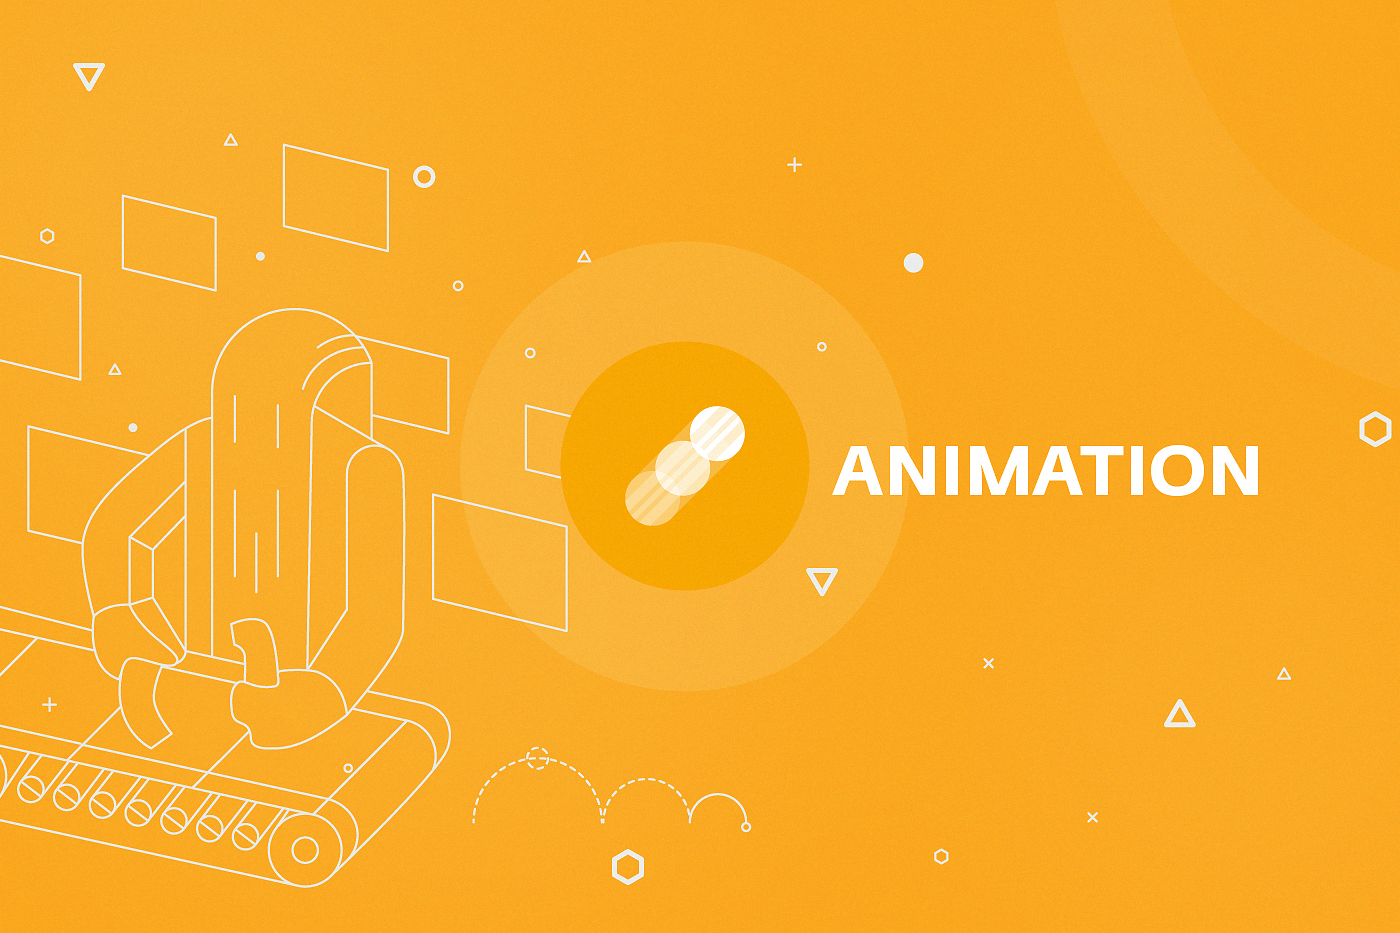 animation eng - 2 Workshops, 1 City